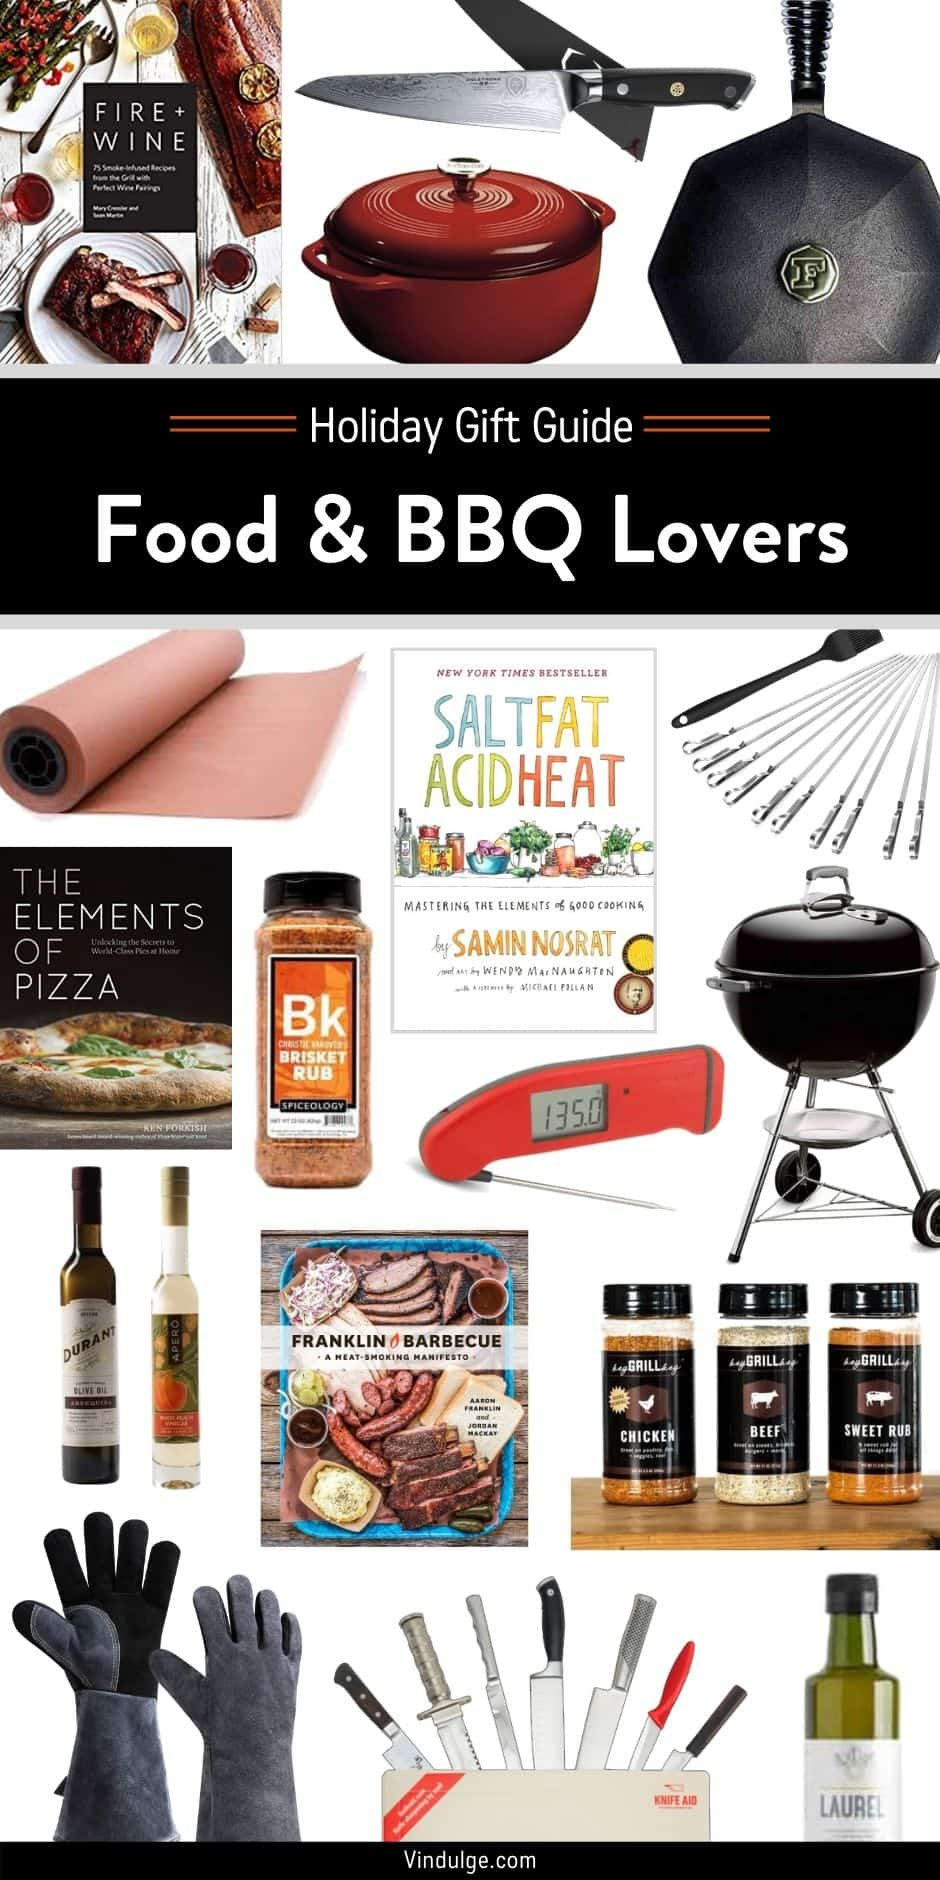 A collage image with different holiday gift ideas for bbq and grilled food lovers